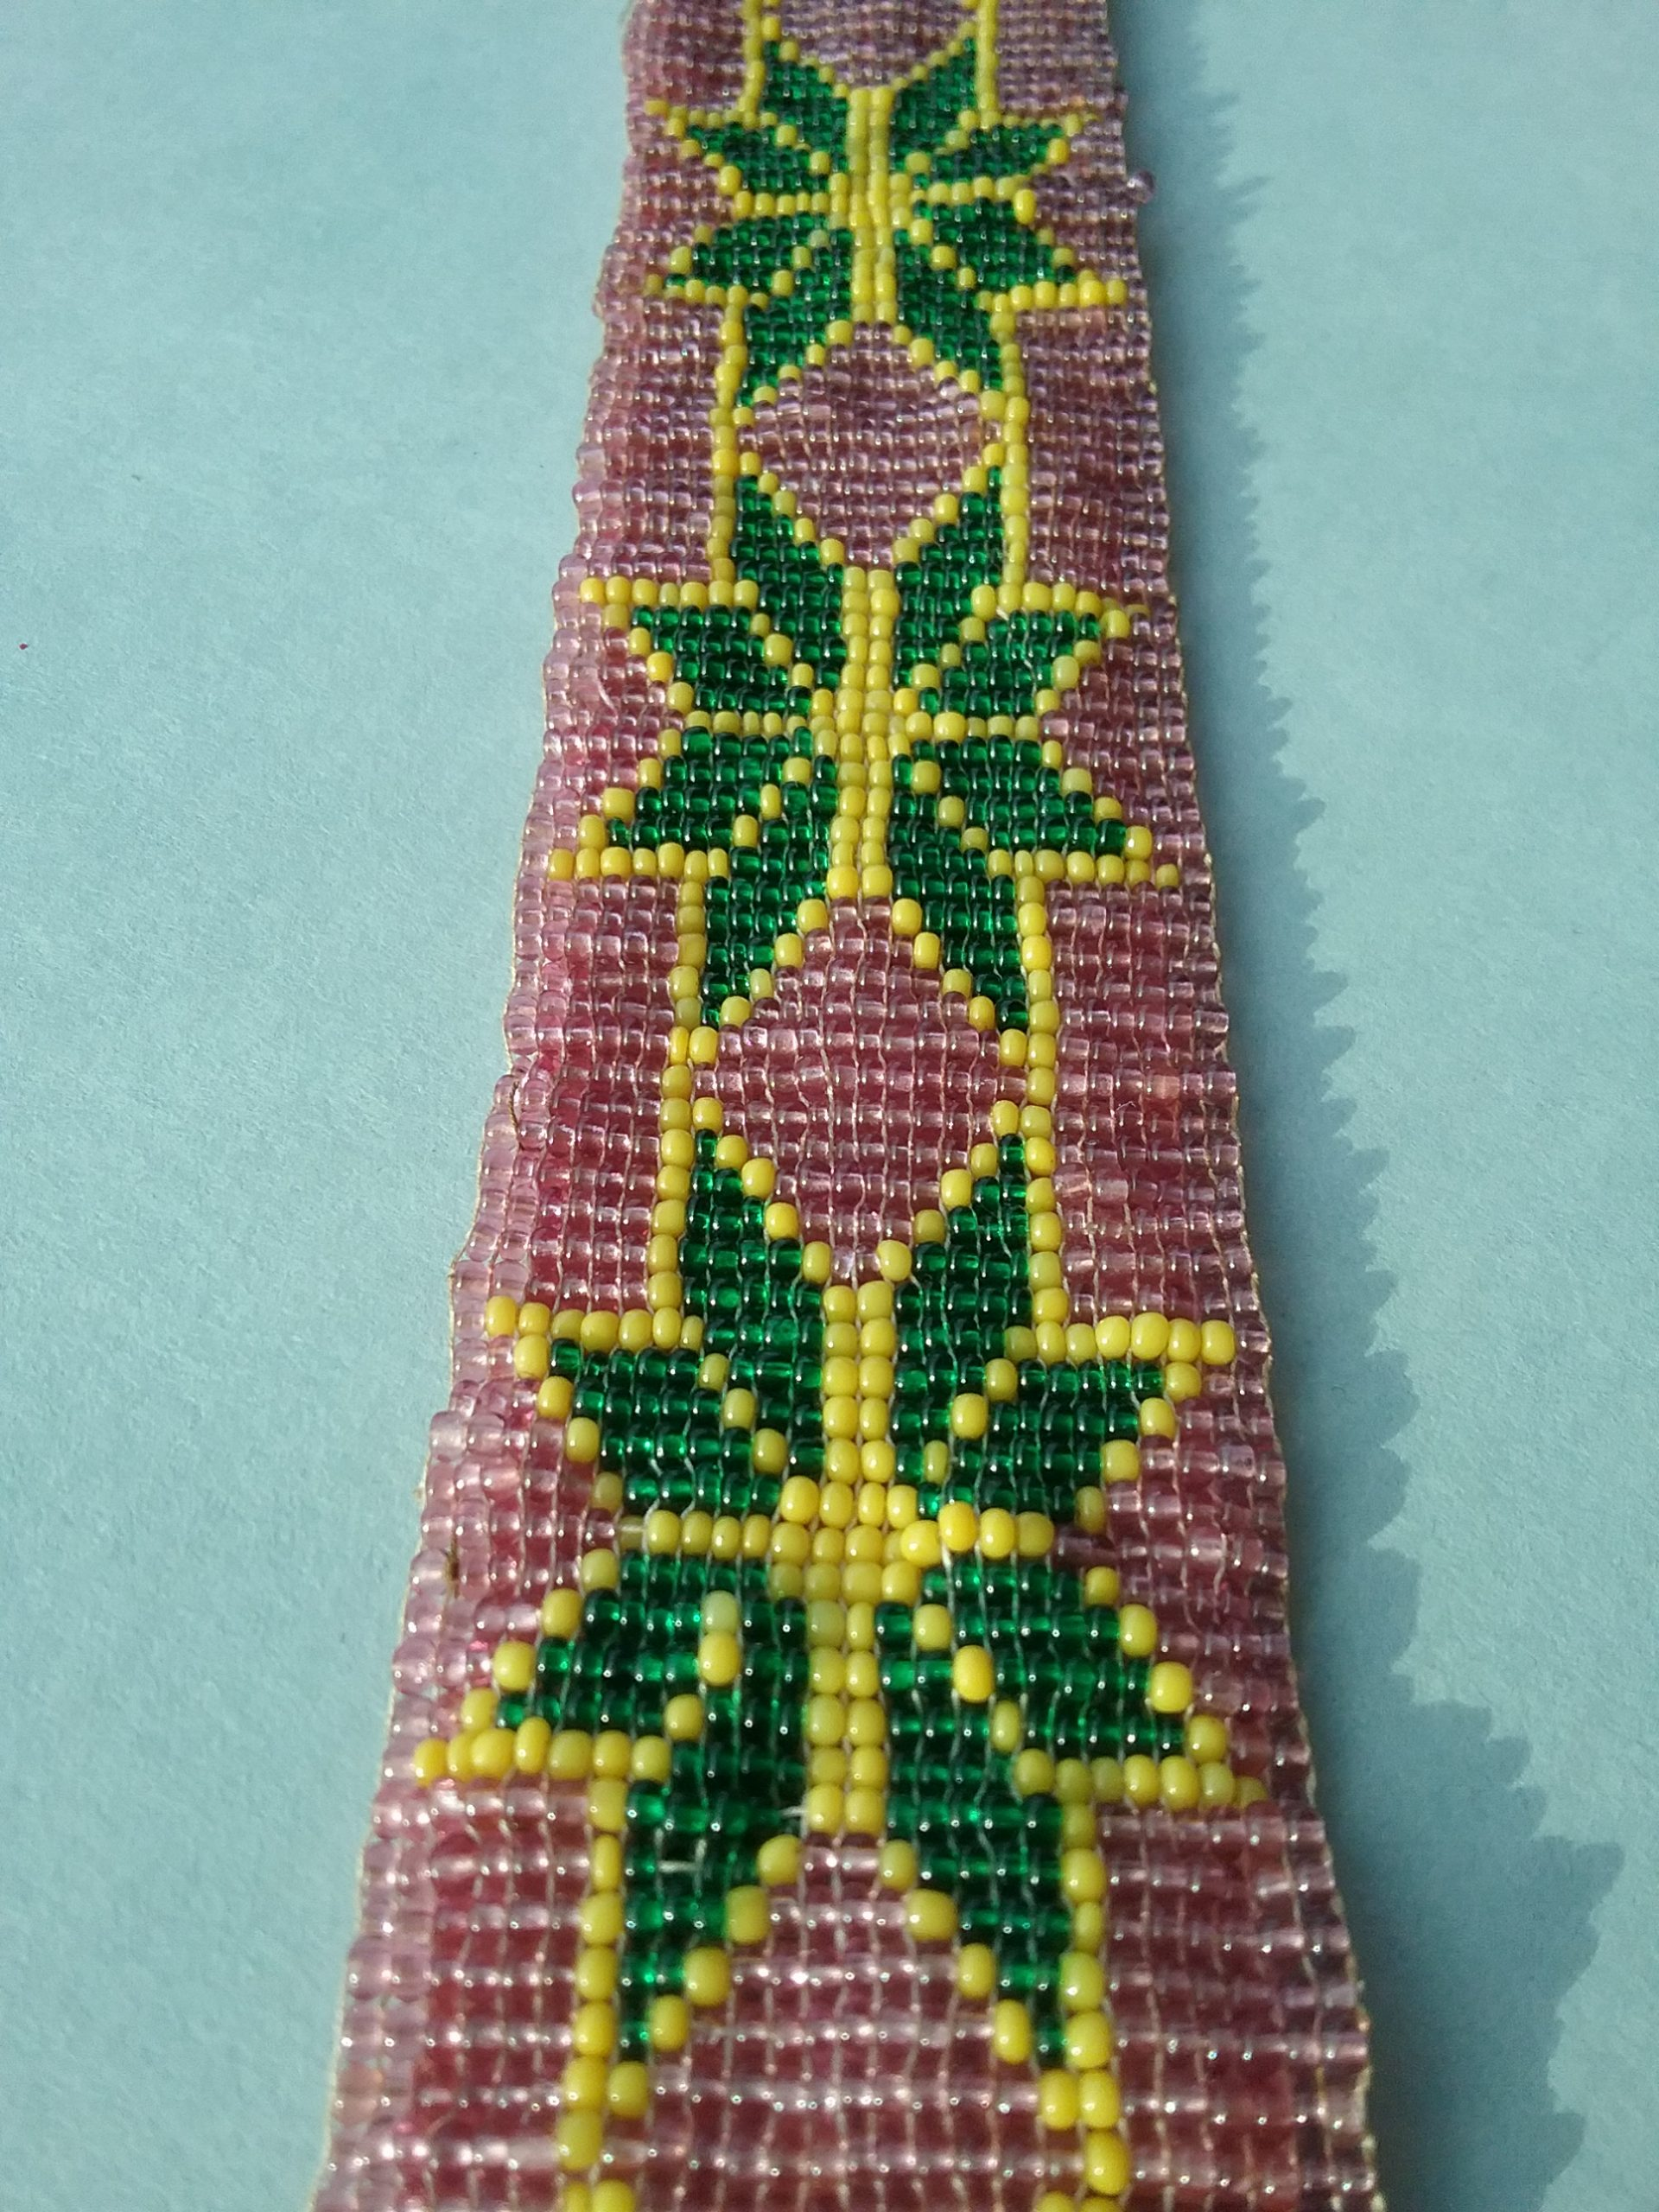 Closeup of beaded band: Loom-woven beaded band with pink, green, and yellow seed beads. From the Hill & Richardson store, c. 1870s. Donated by Mary (Richardson) Harker, daughter of Nathan Richardson. MCHS collections, #1945.76.9.